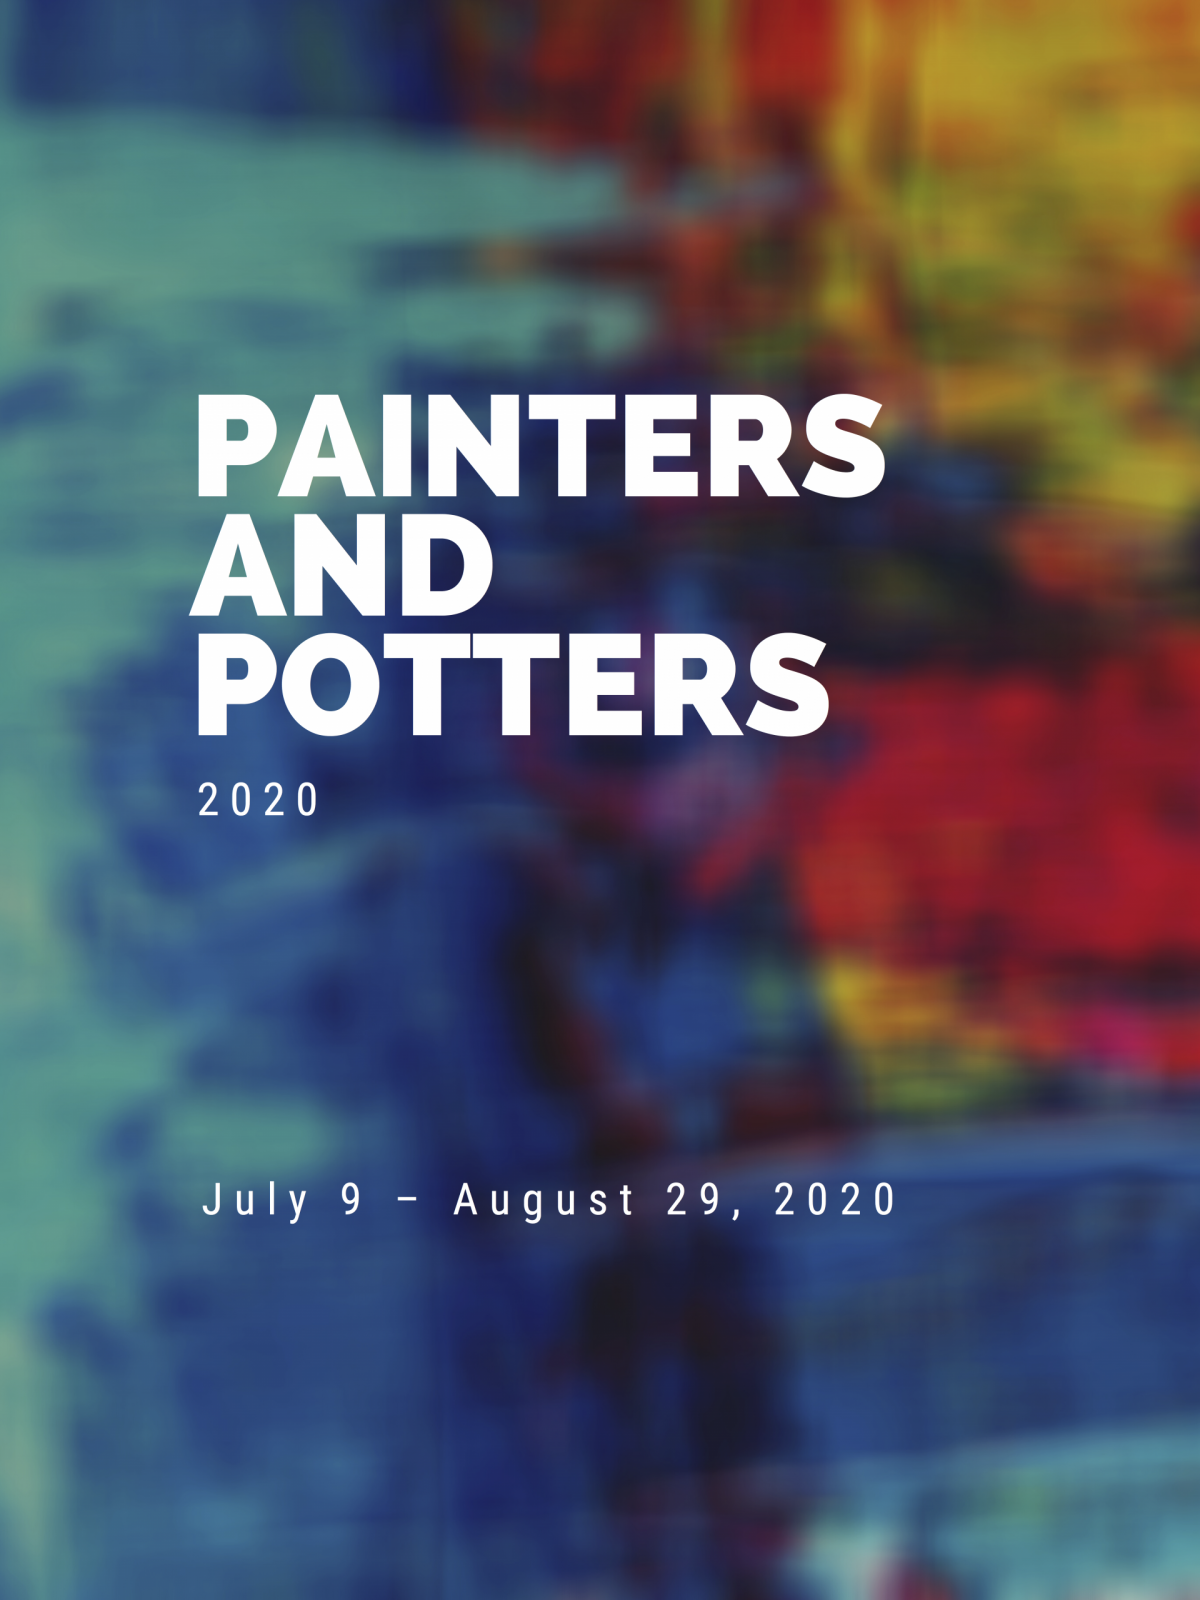 Painters and Potters